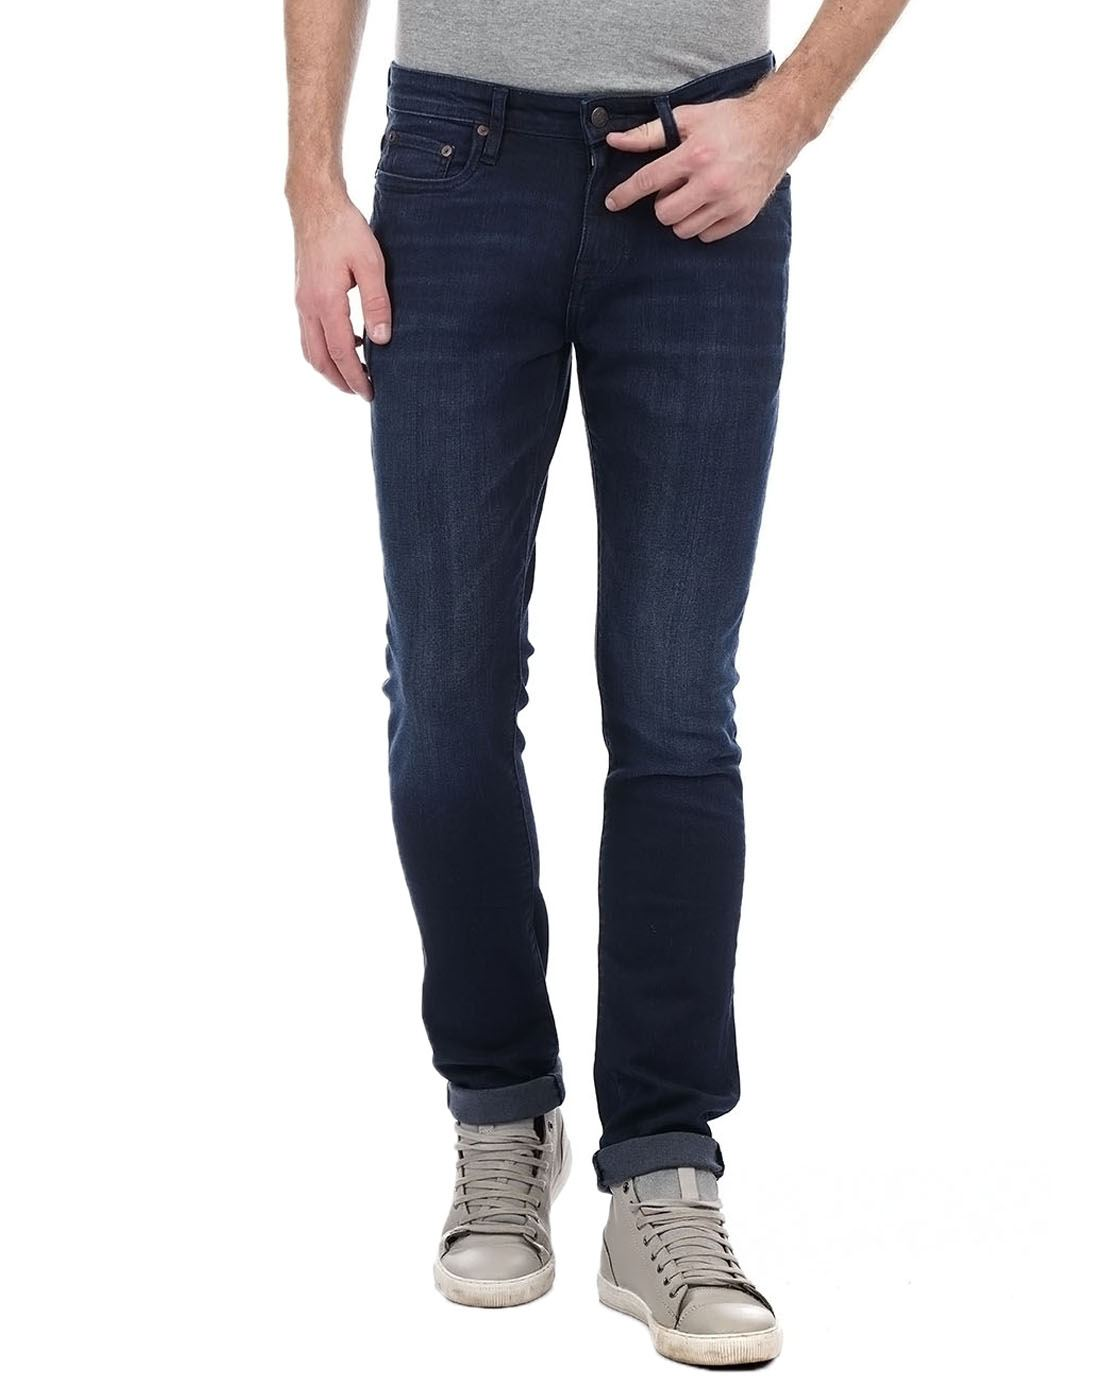 Aeropostale Men Navy Jean